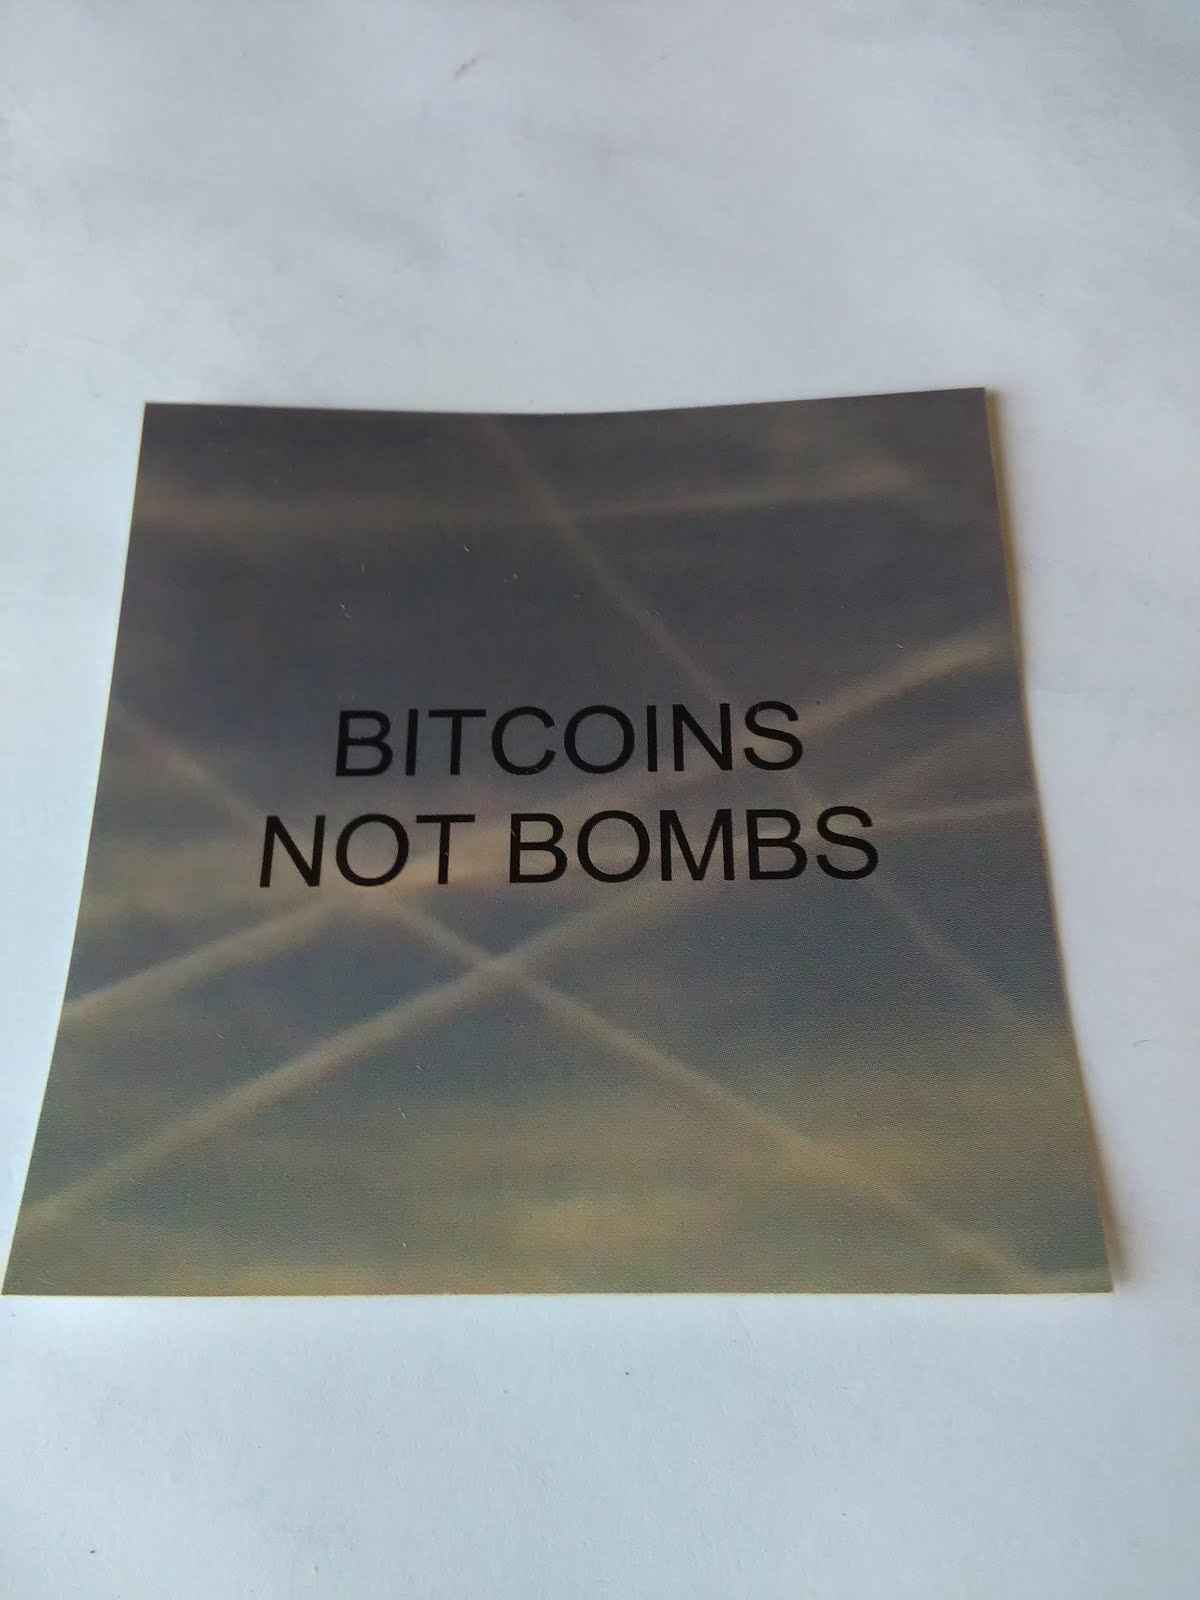 BITCOINS NOT BOMBS - QUALITY VINYL STICKER - JUST 3.98